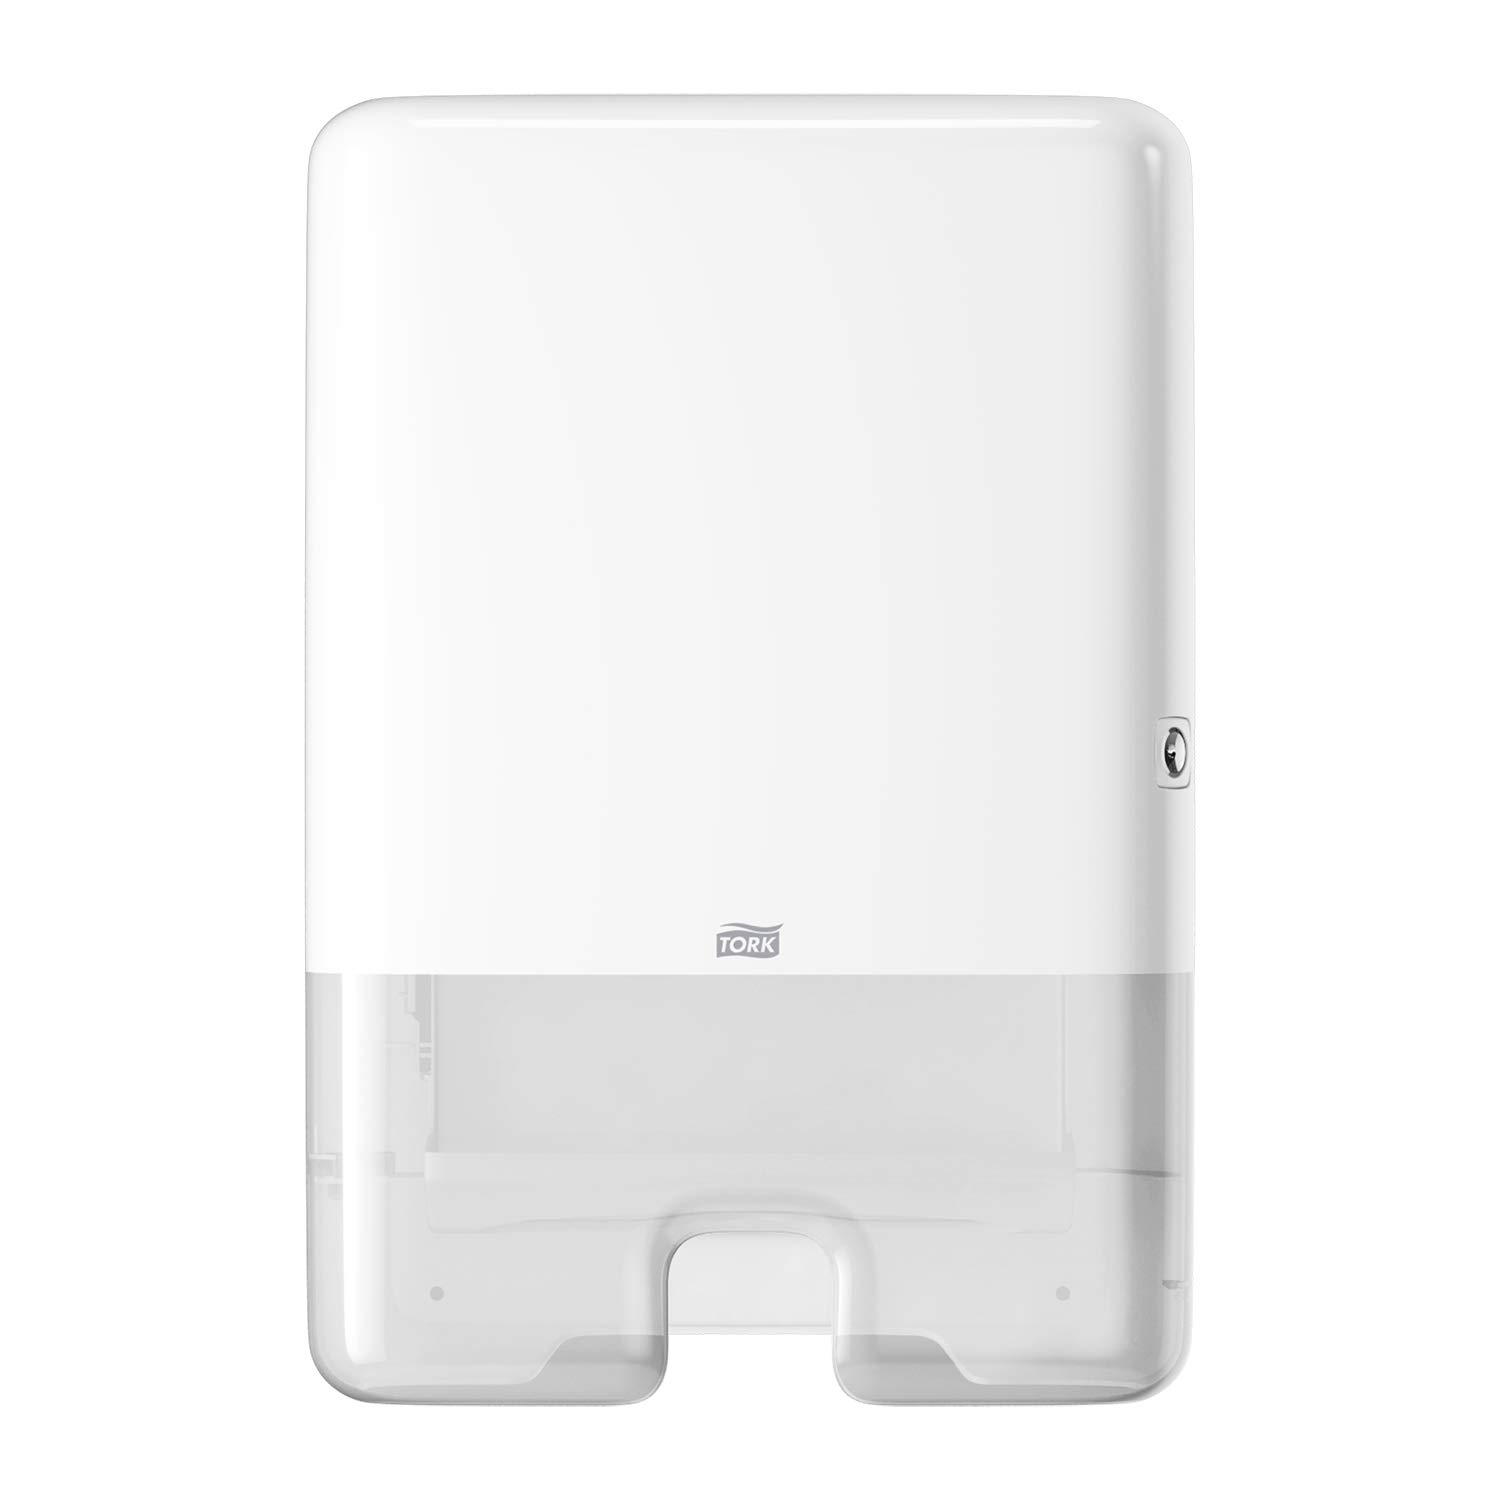 Tork Elevation Xpress Paper Towel Dispenser H2, Elevation Design - Multifold Hand Towel Dispenser 552020, Slim One-at-a-time Dispensing, White